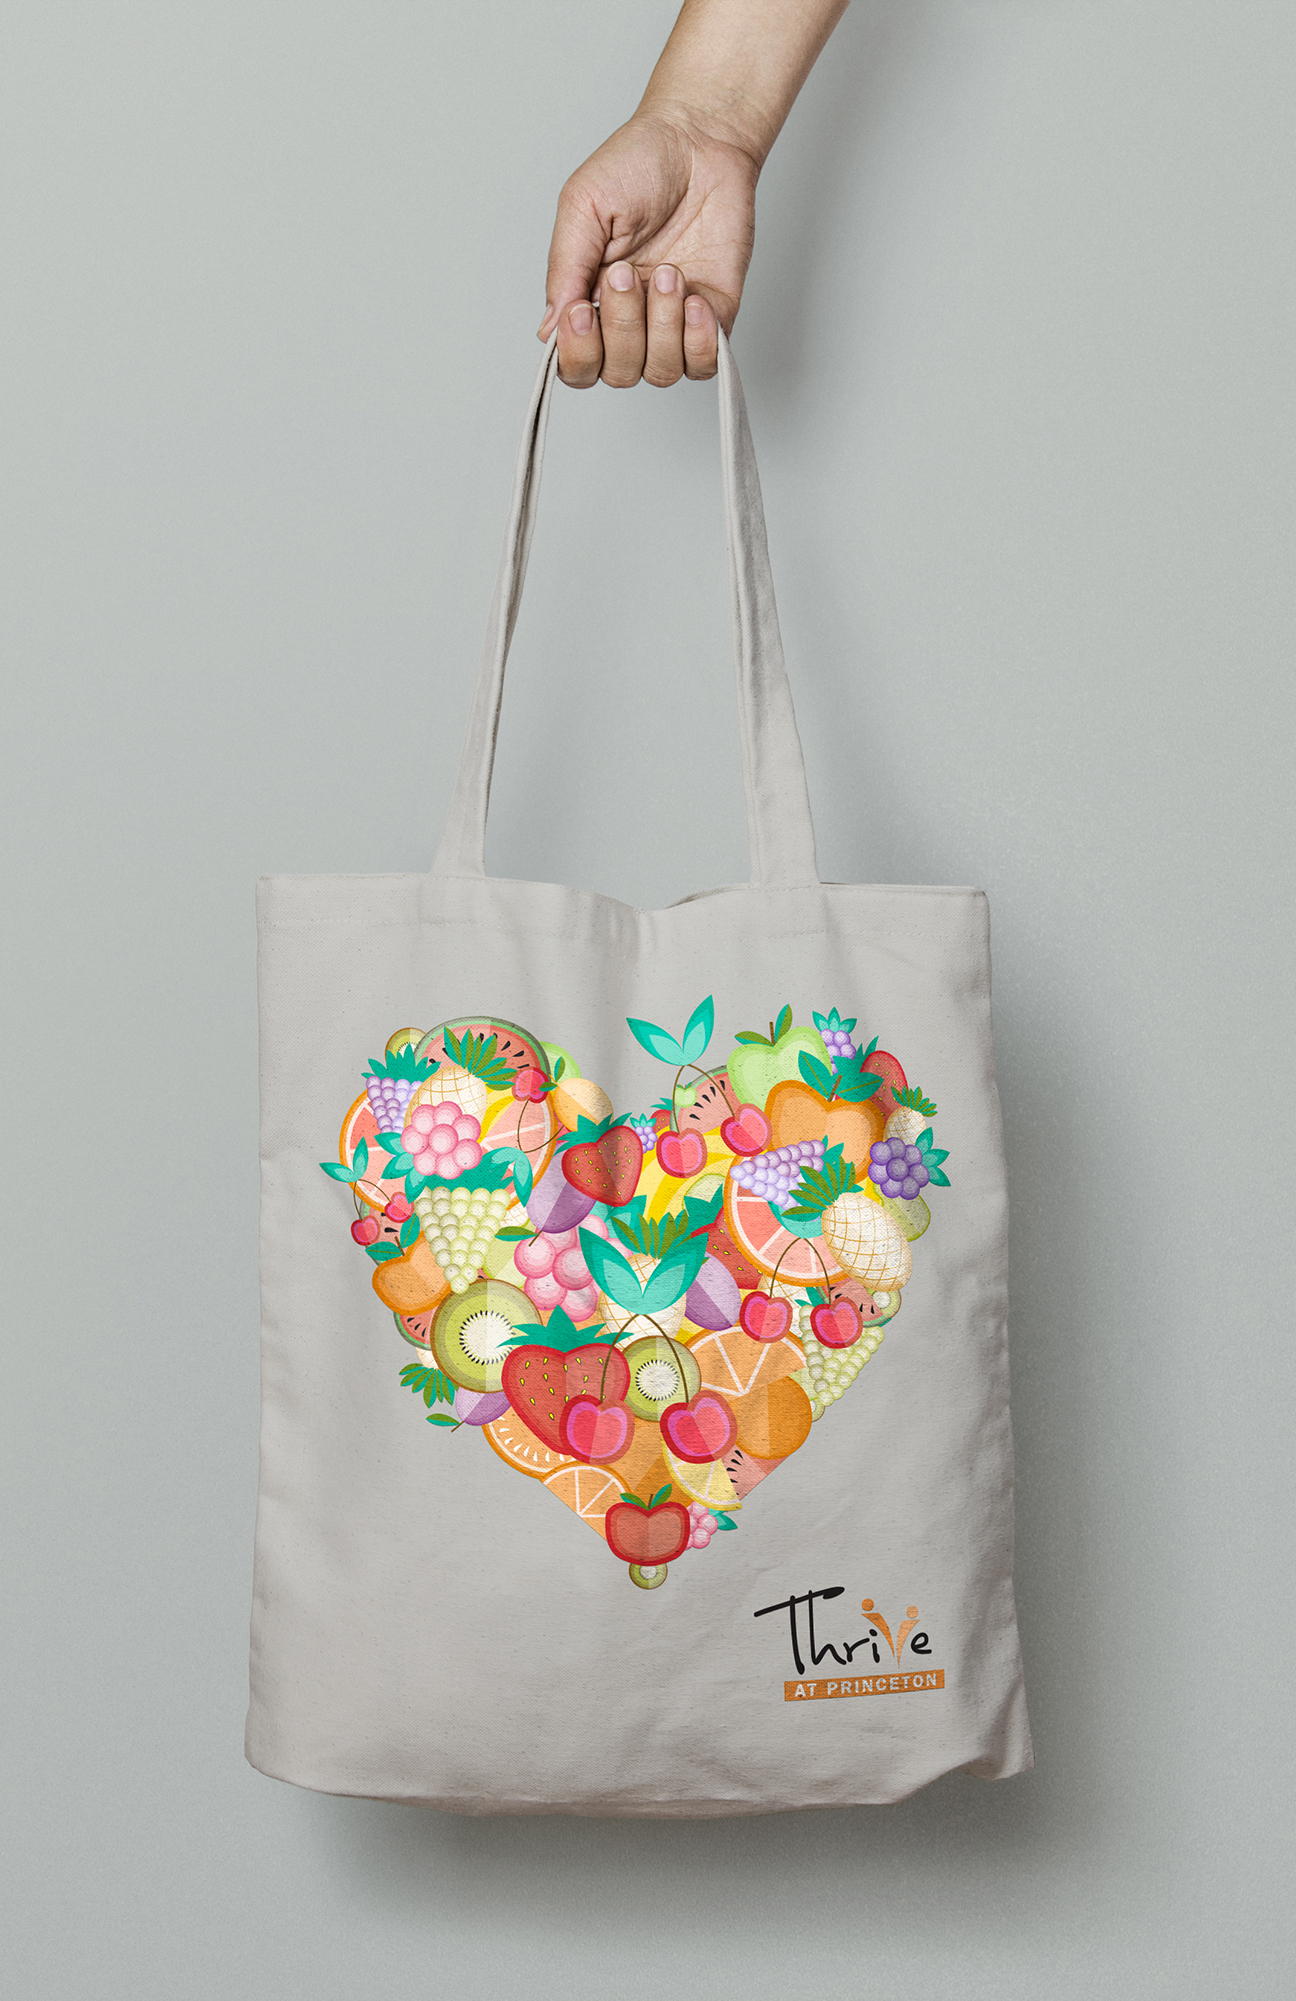 health-fair-tote-white-thrive.jpg